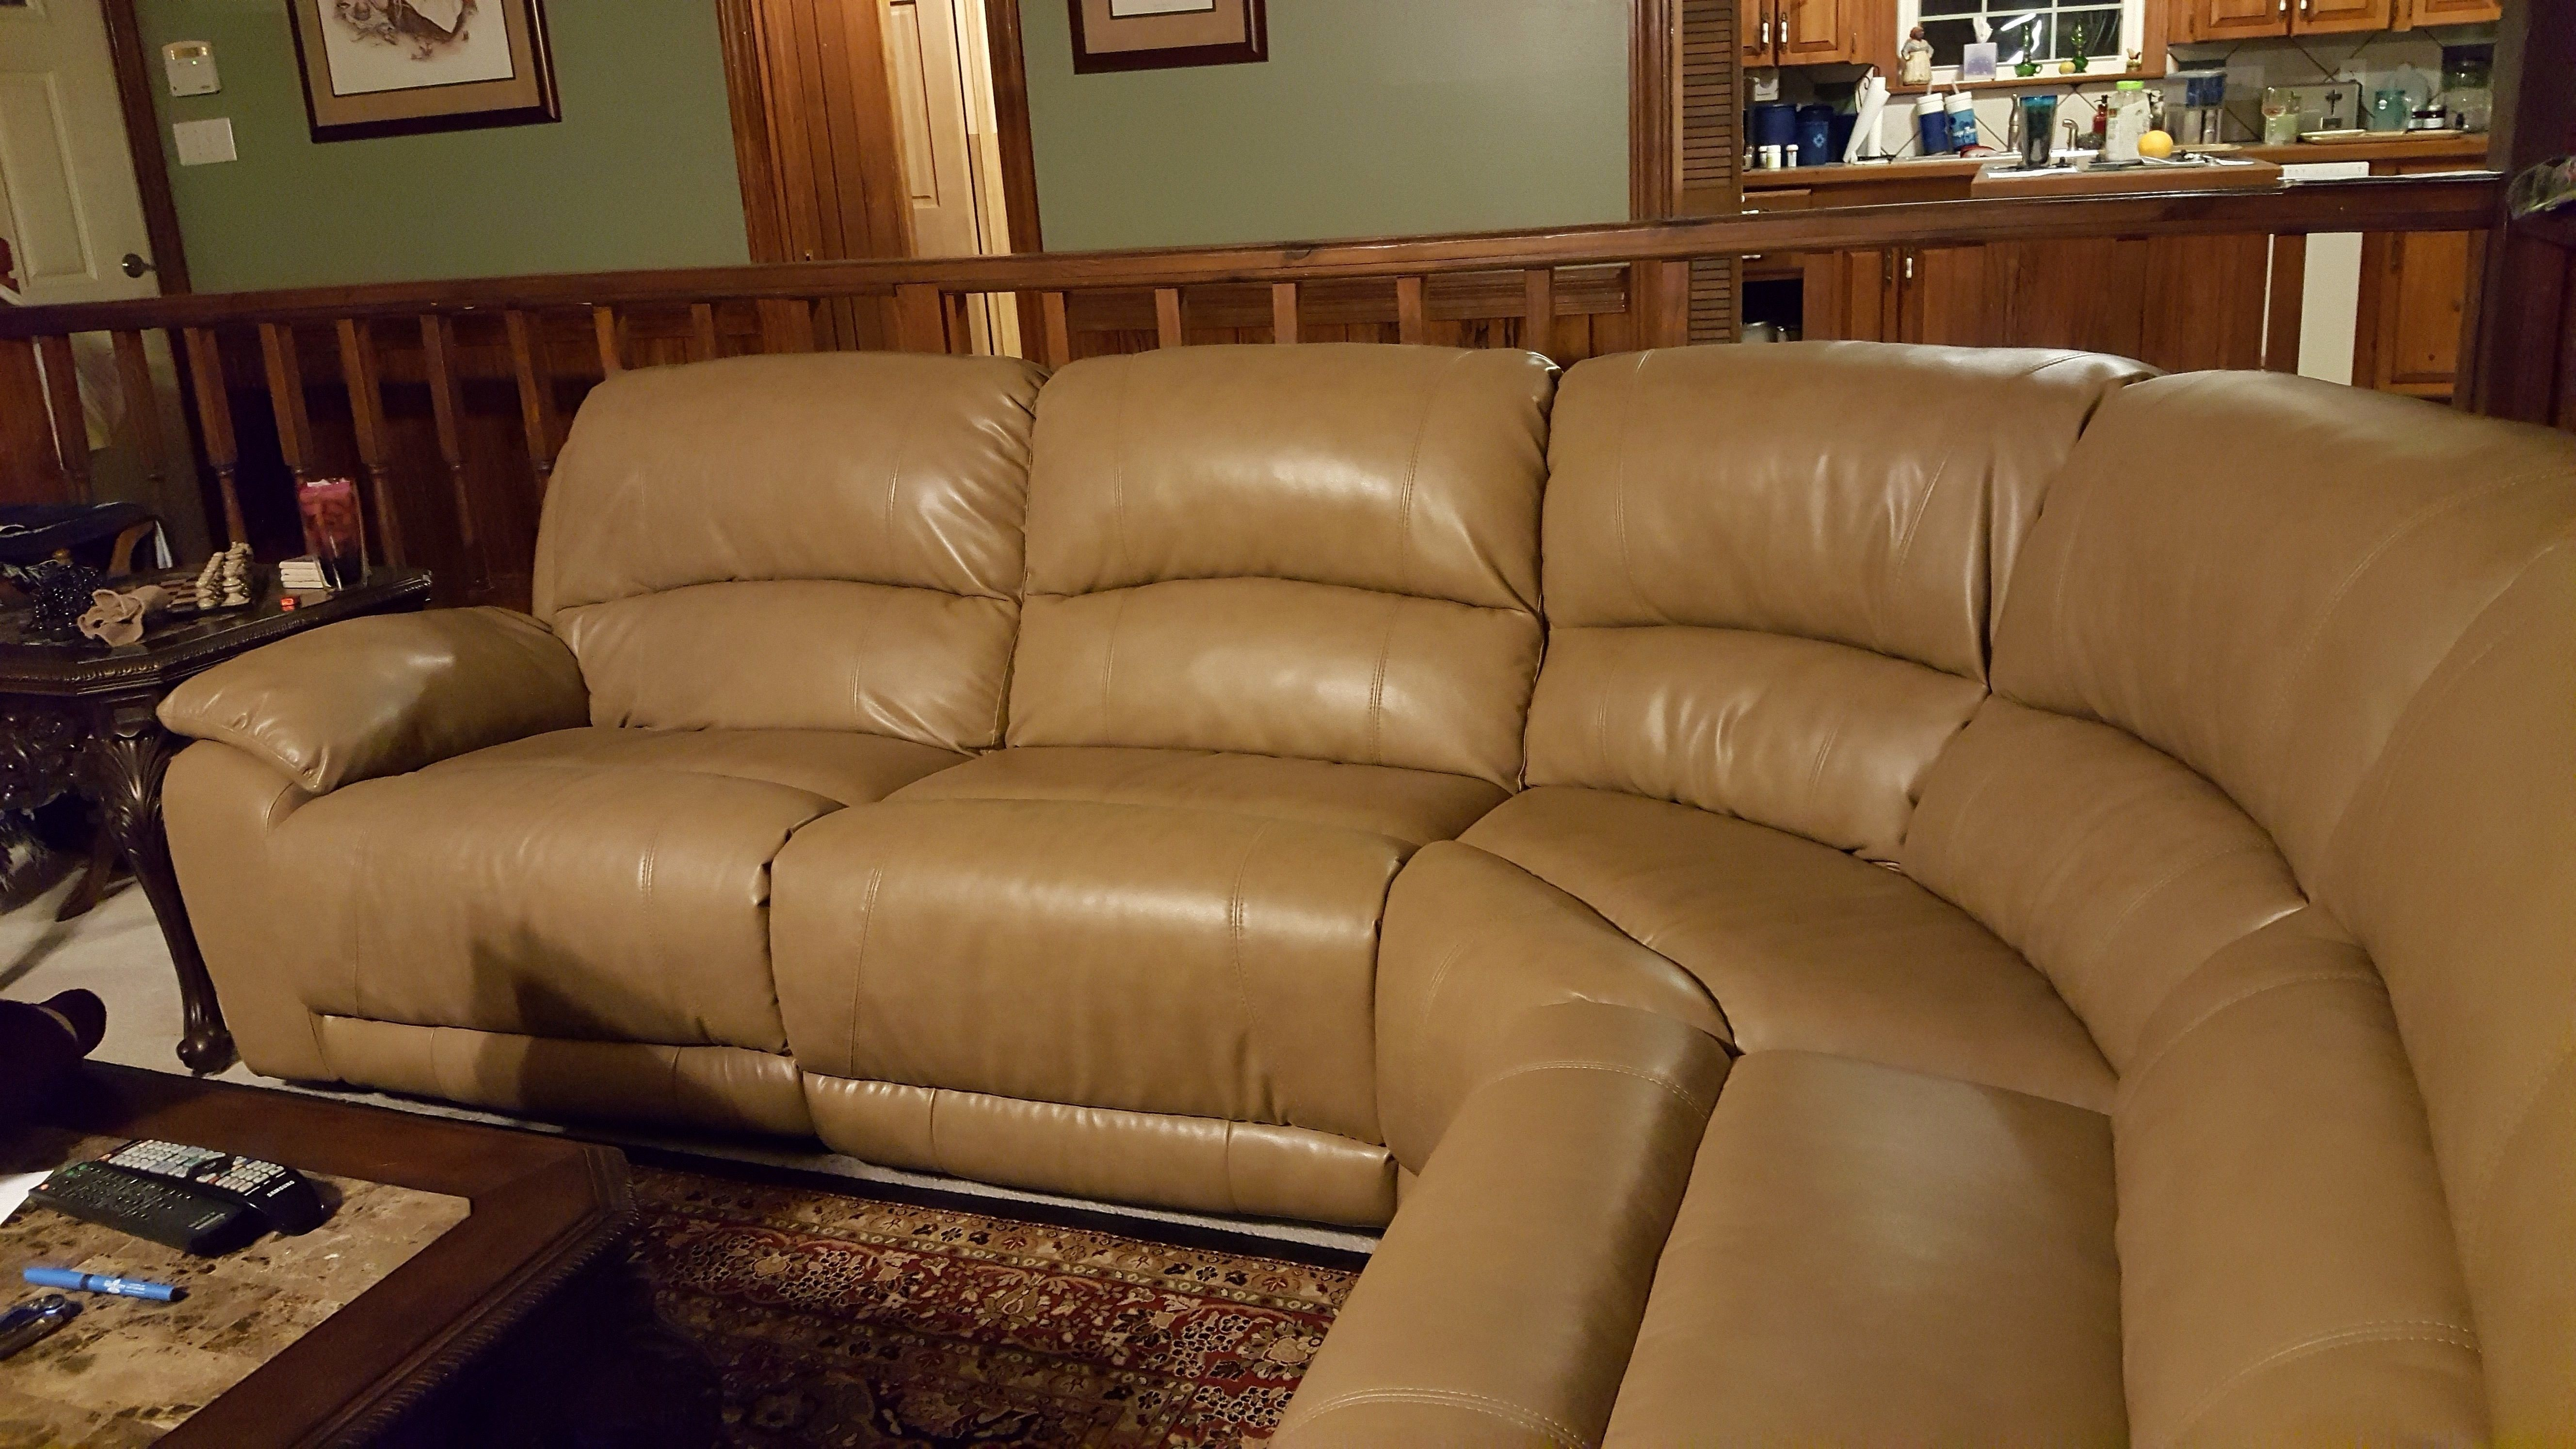 Best Rooms to Go sofa Sets Image Rooms to Go sofa Sets